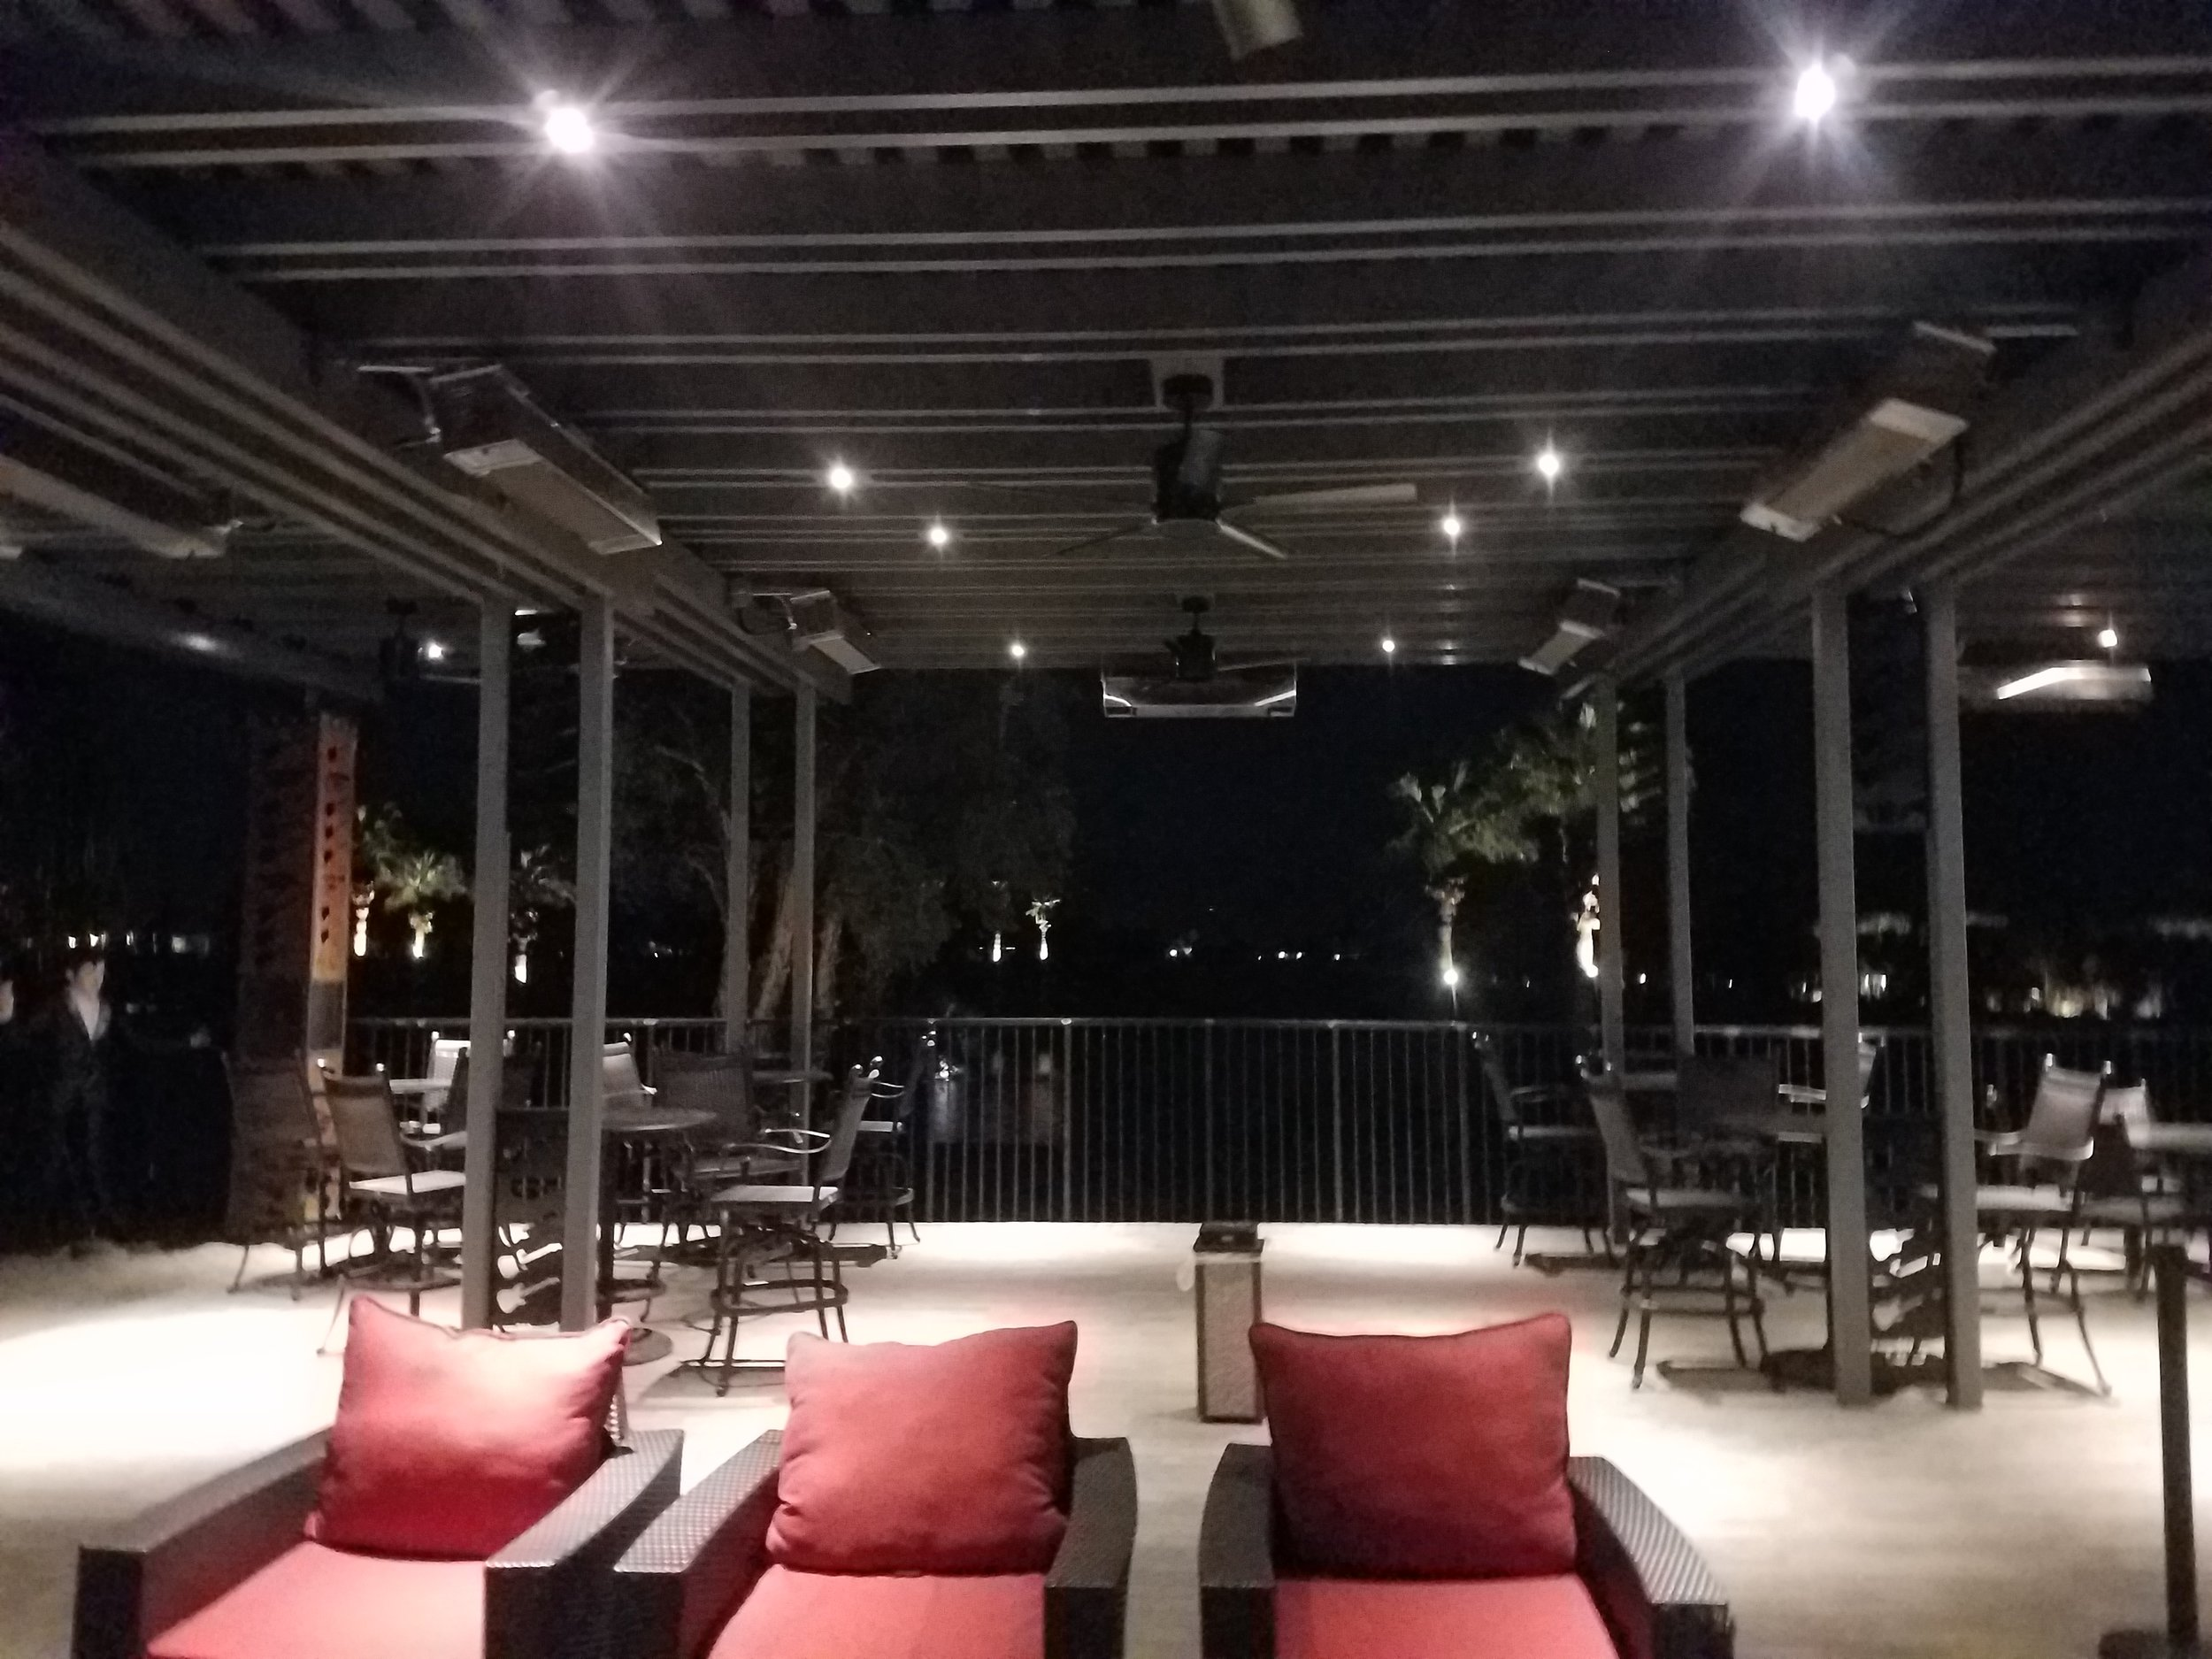 Restaurant outdoor seating area with lattice roof